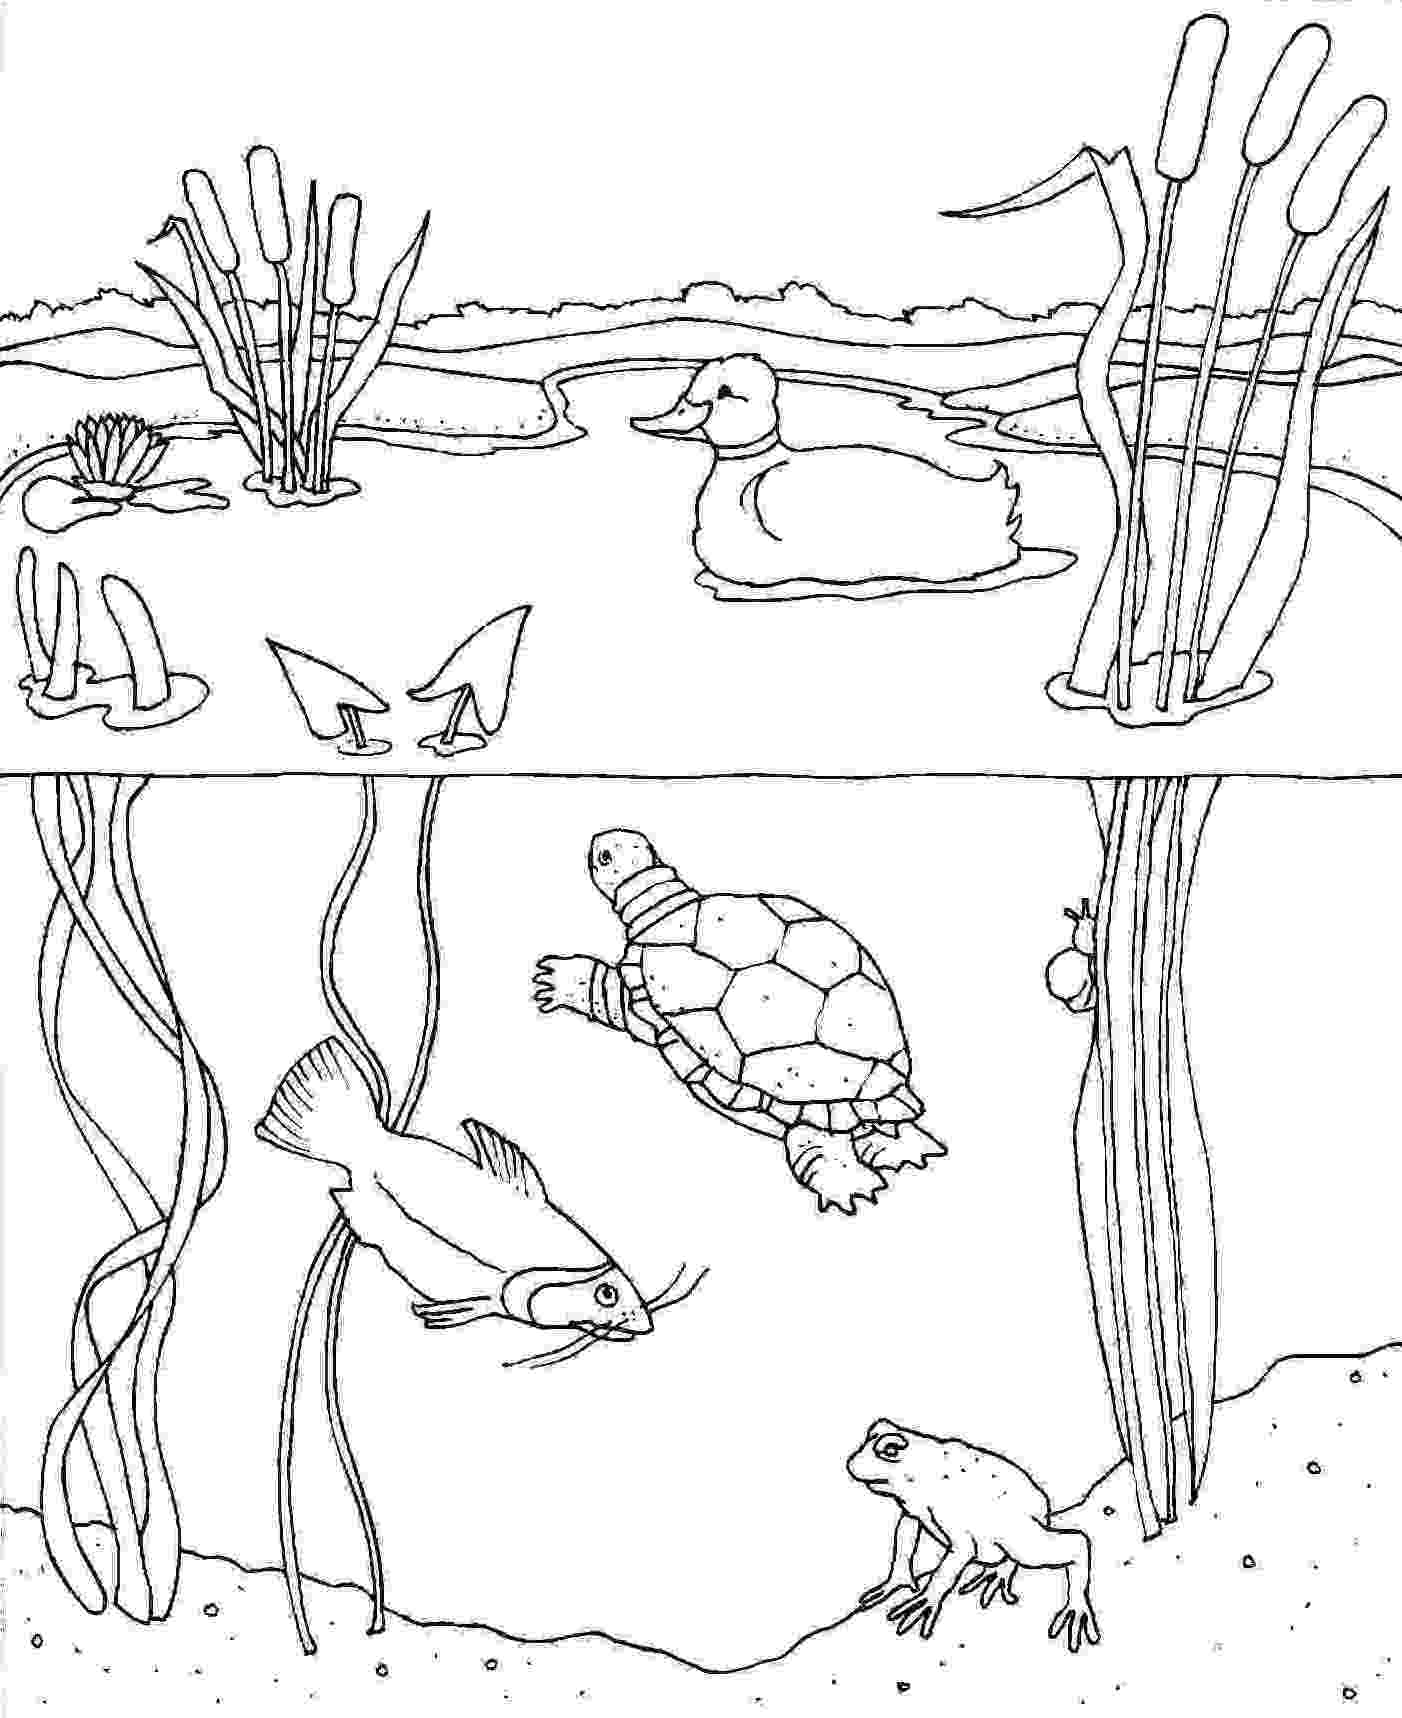 pond pictures to color pond coloring pages with a tree free printable coloring color to pond pictures